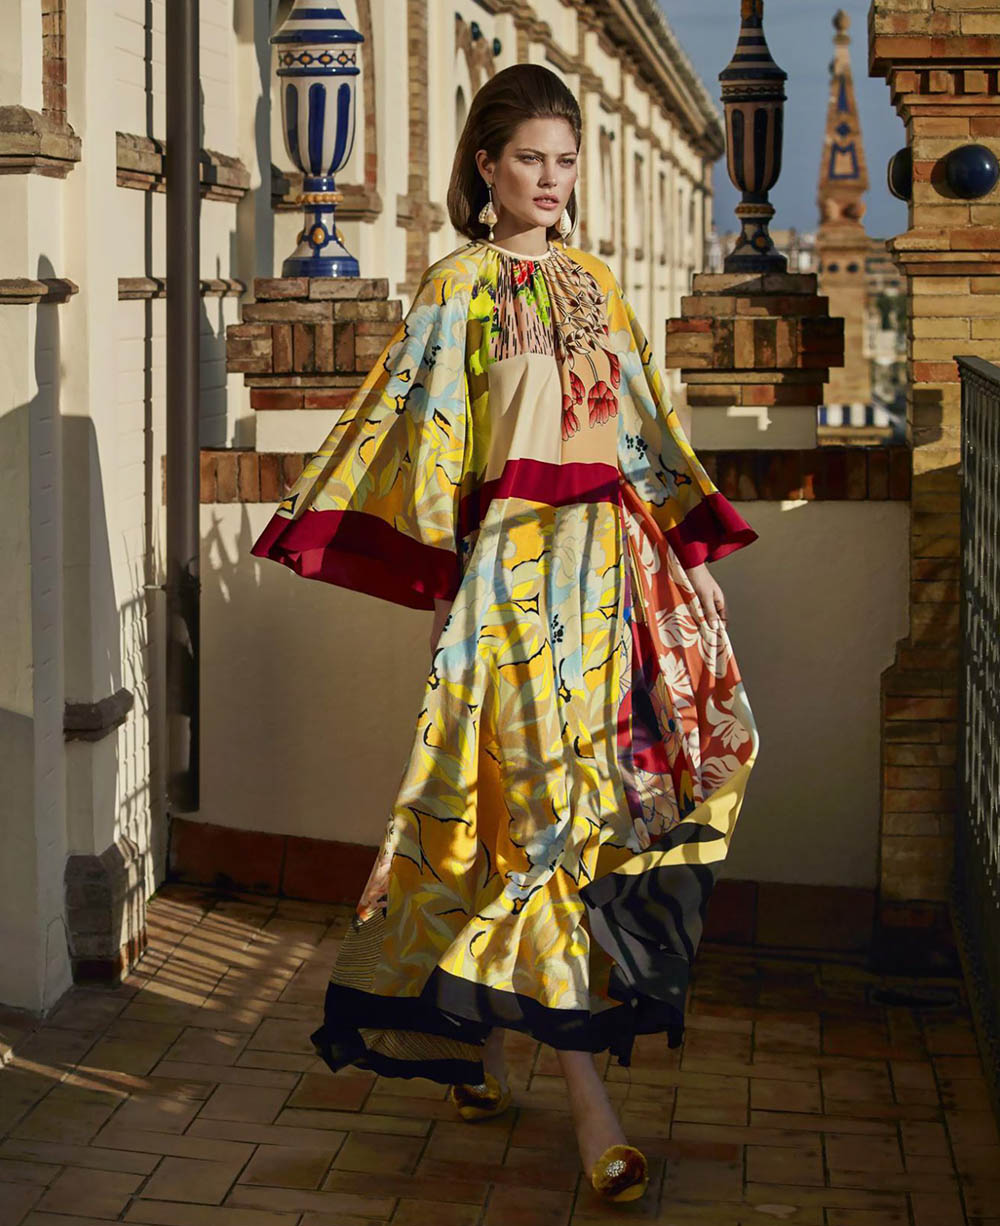 Catherine McNeil by Marcin Tyszka for Harper's Bazaar US February 2019